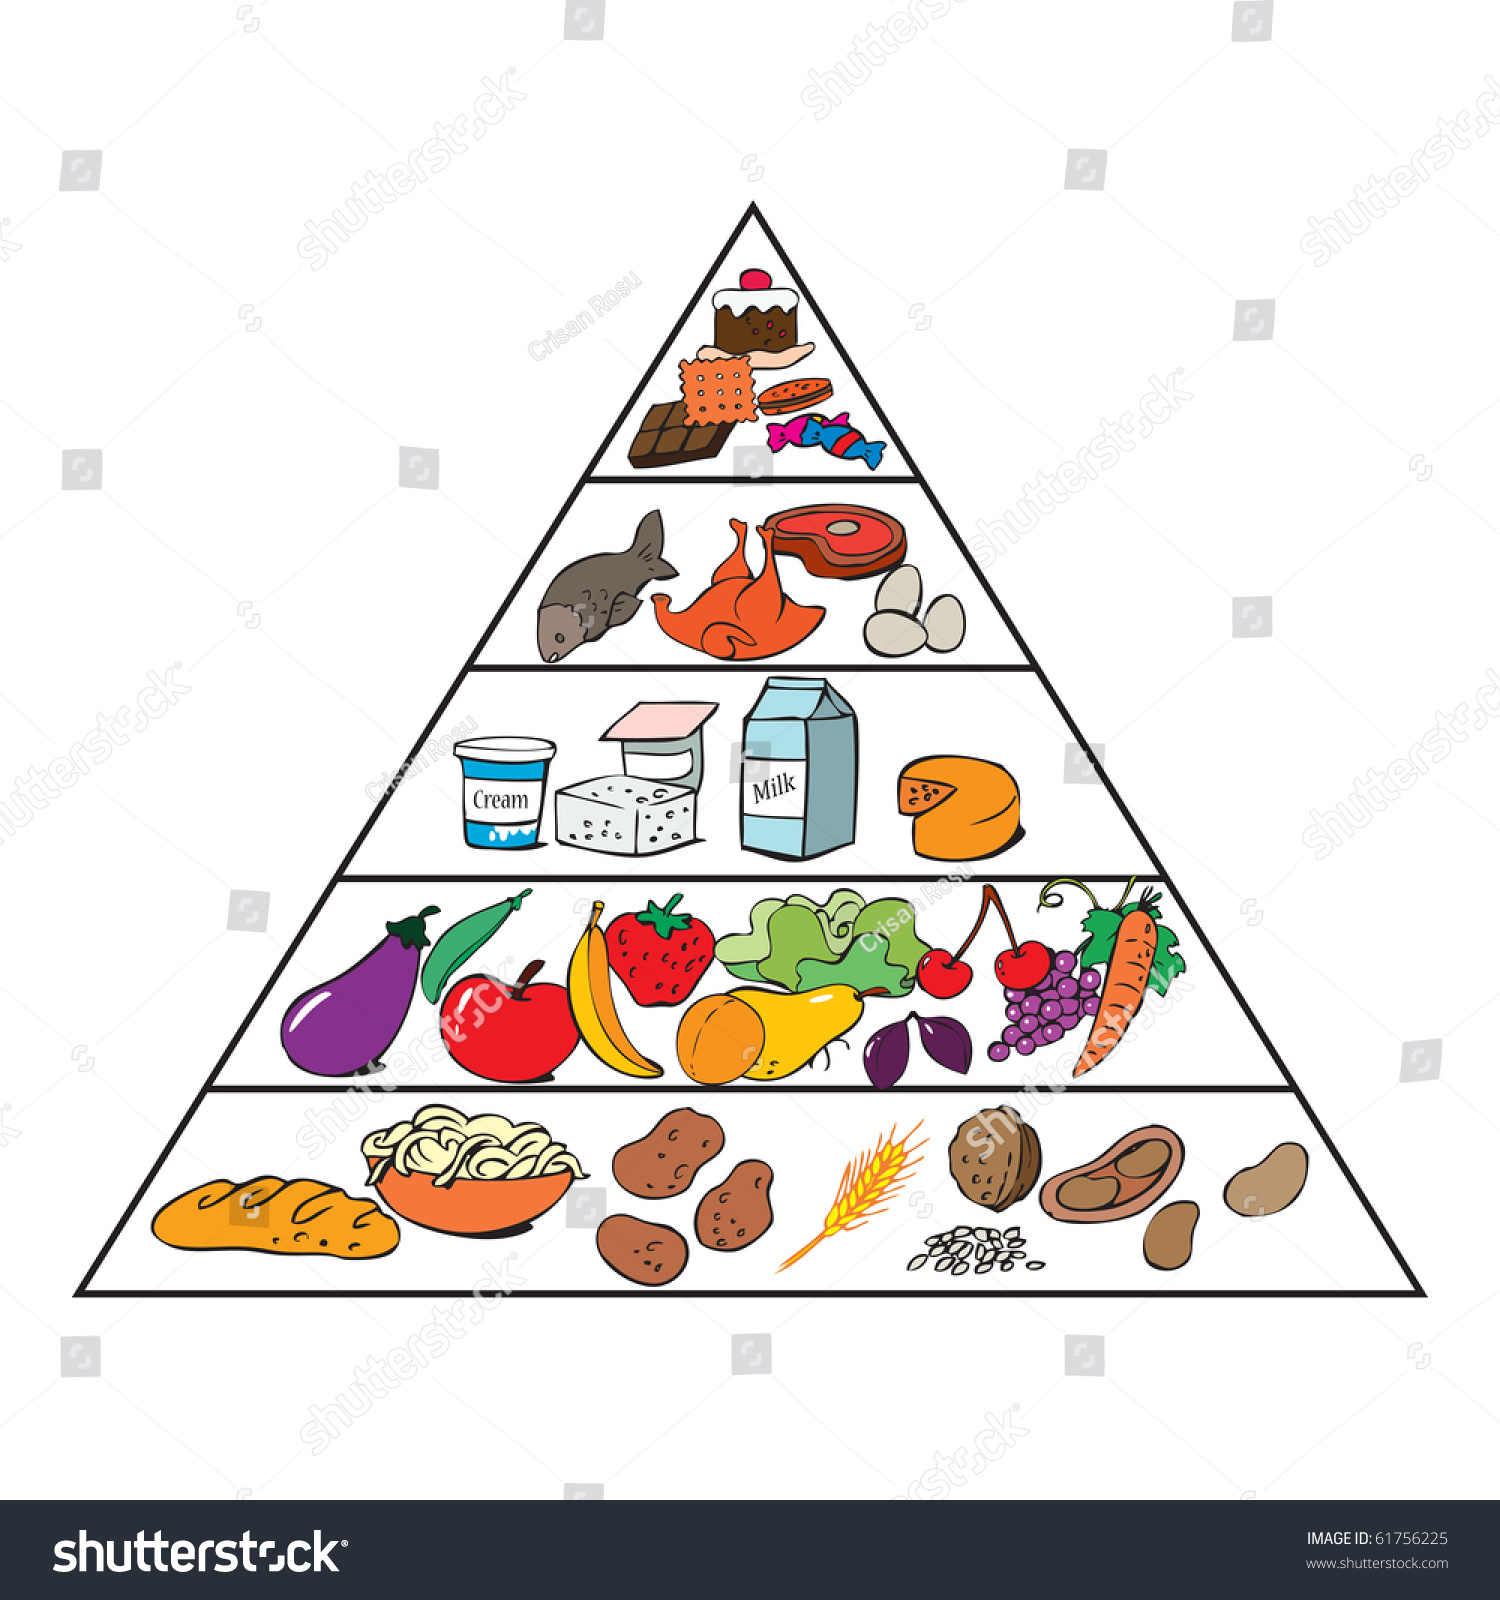 Chatting Food Clipart moreover Fish Background Colorful Icons Circle Layout likewise Stock Vector Vector Illustration Food Pyramid For Kids Cartoon Concept White Background as well Food Pyramid Healthy Eating Infographic Healthy Lifestyle Icons Products Vector Illustration as well In The Desert Clipart Egyptian Pyramid. on stock vector illustration food pyramid for kids cartoon